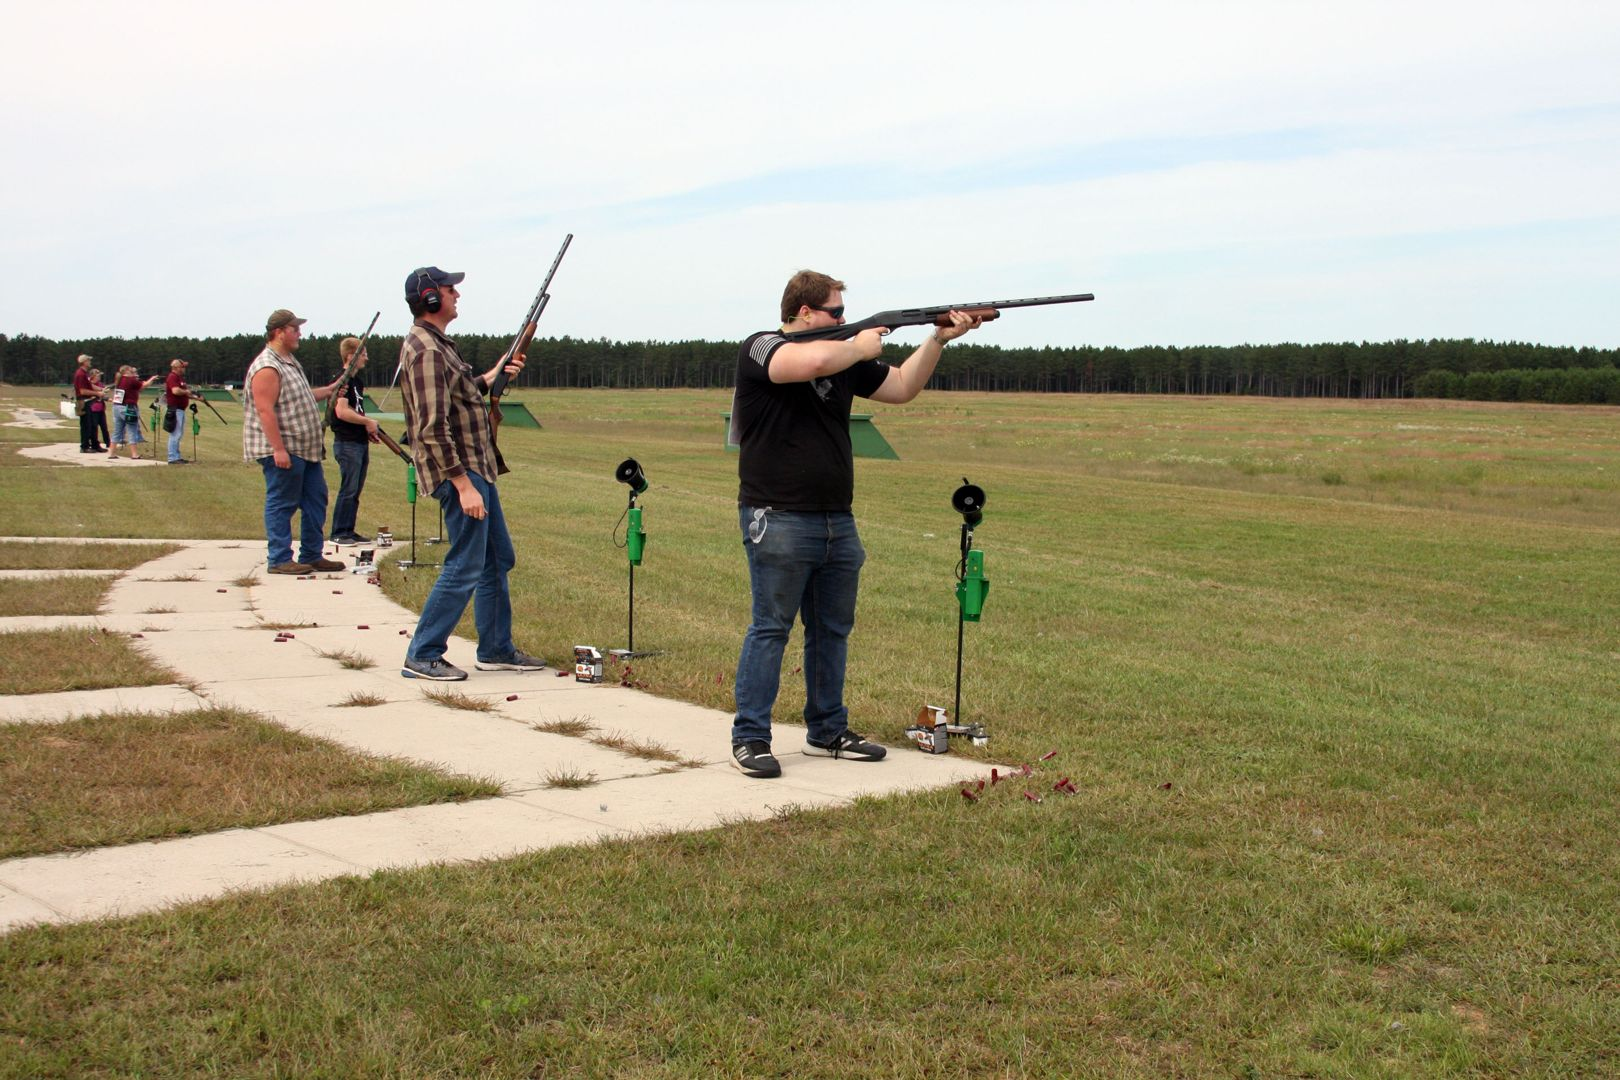 Trapshoot Fundraiser doubles money raised for student grant programs